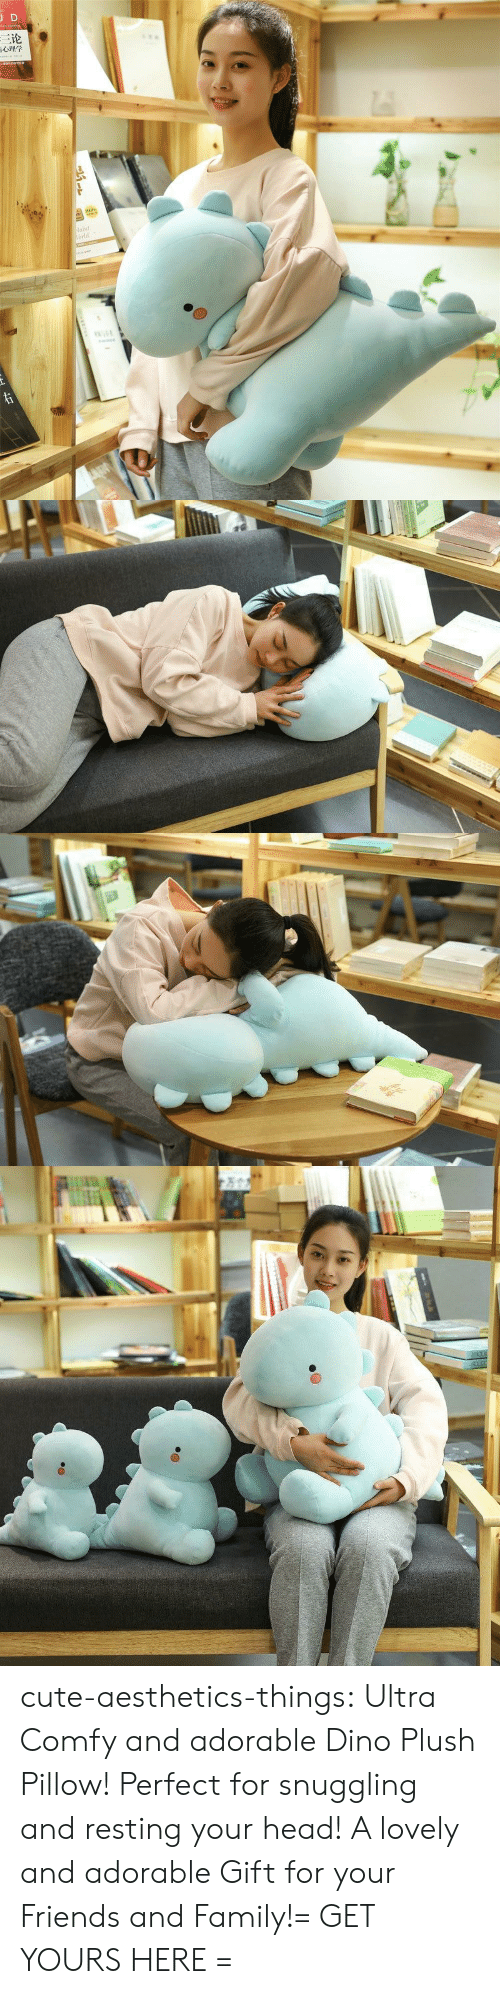 Cute, Family, and Friends: JD  三论  laint  orld  TNAR  ww.e cute-aesthetics-things:  Ultra Comfy and adorable Dino Plush Pillow! Perfect for snuggling and resting your head! A lovely and adorable Gift for your Friends and Family!= GET YOURS HERE =